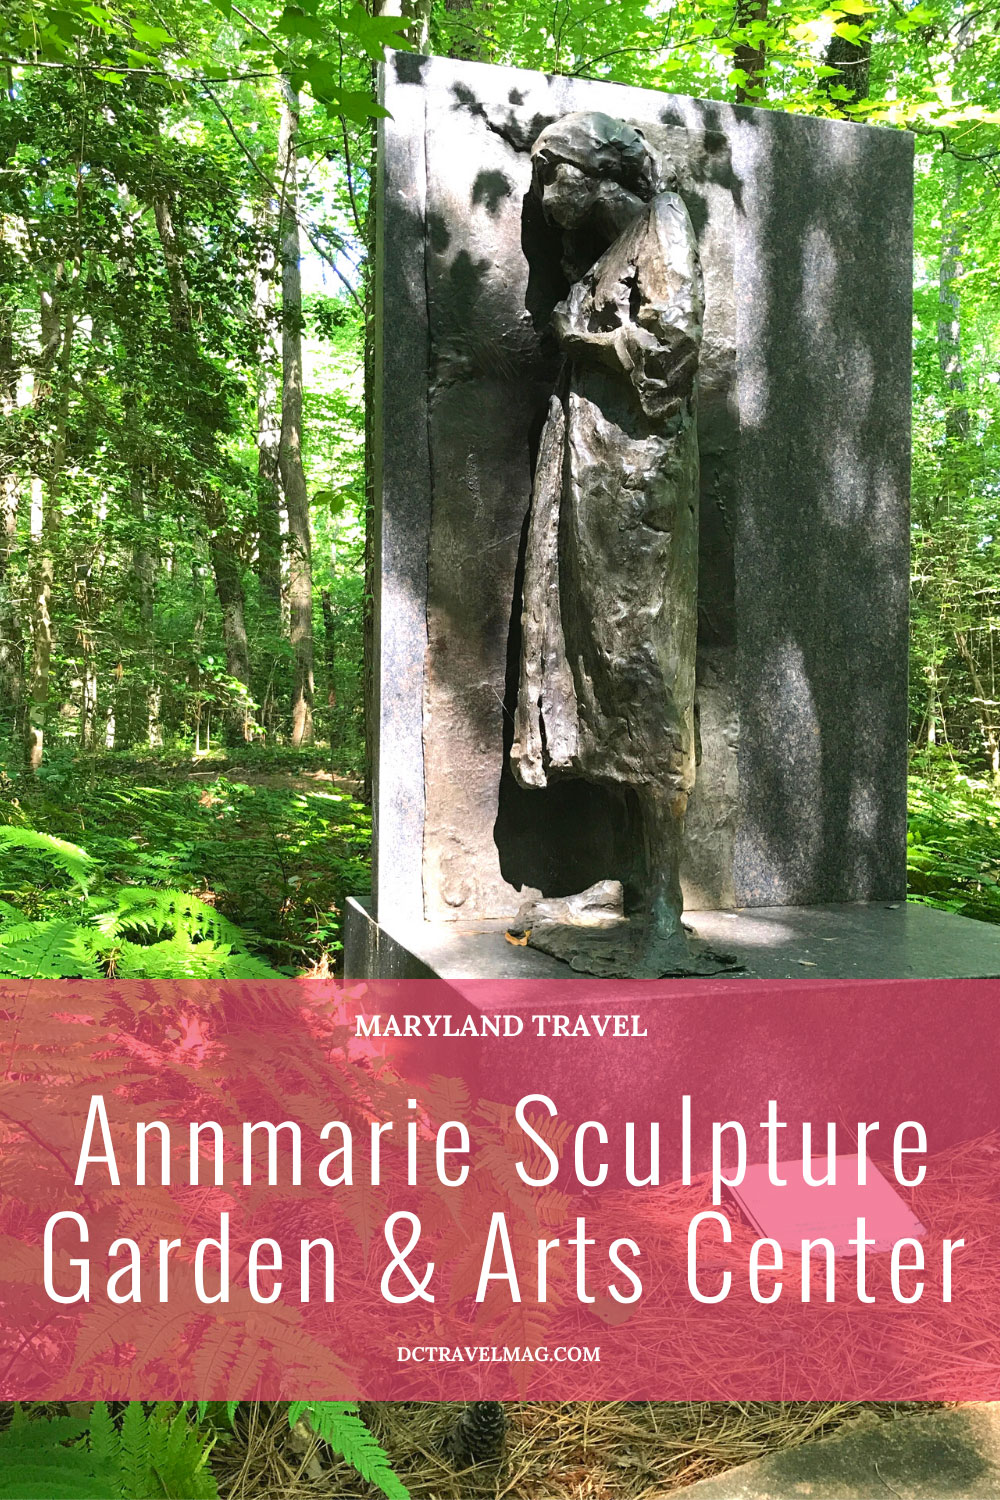 Annmarie Sculpture Garden & Arts Center